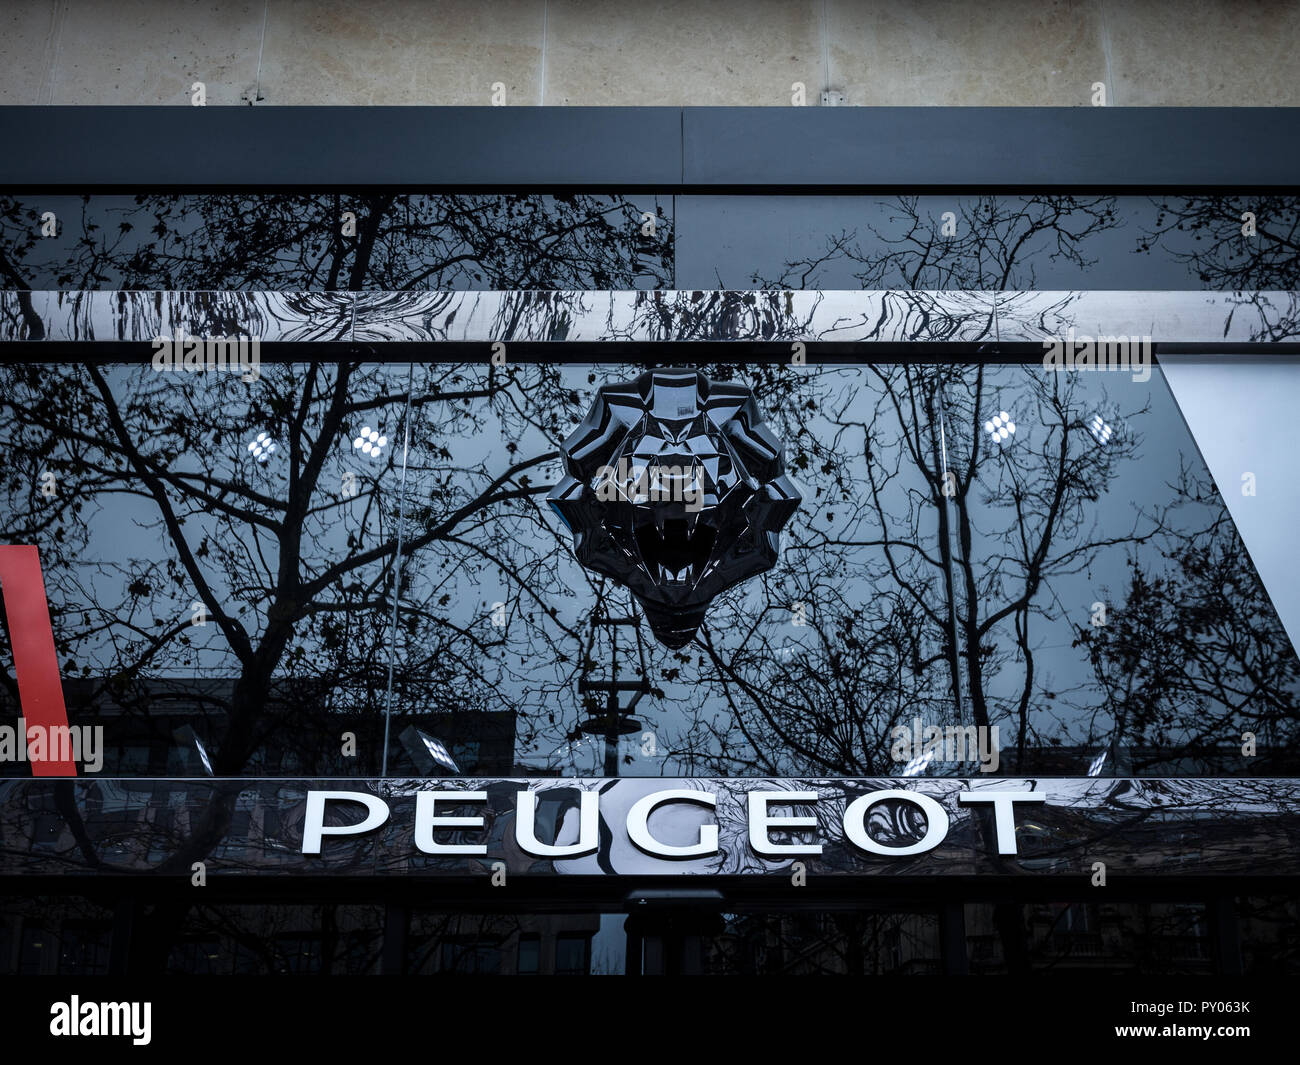 PARIS, FRANCE - DECEMBER 20, 2017: Peugeot logo on their showroom of Champs Elysees with its distinctive Lion. Peugeot, part of PSA group, is one of m - Stock Image